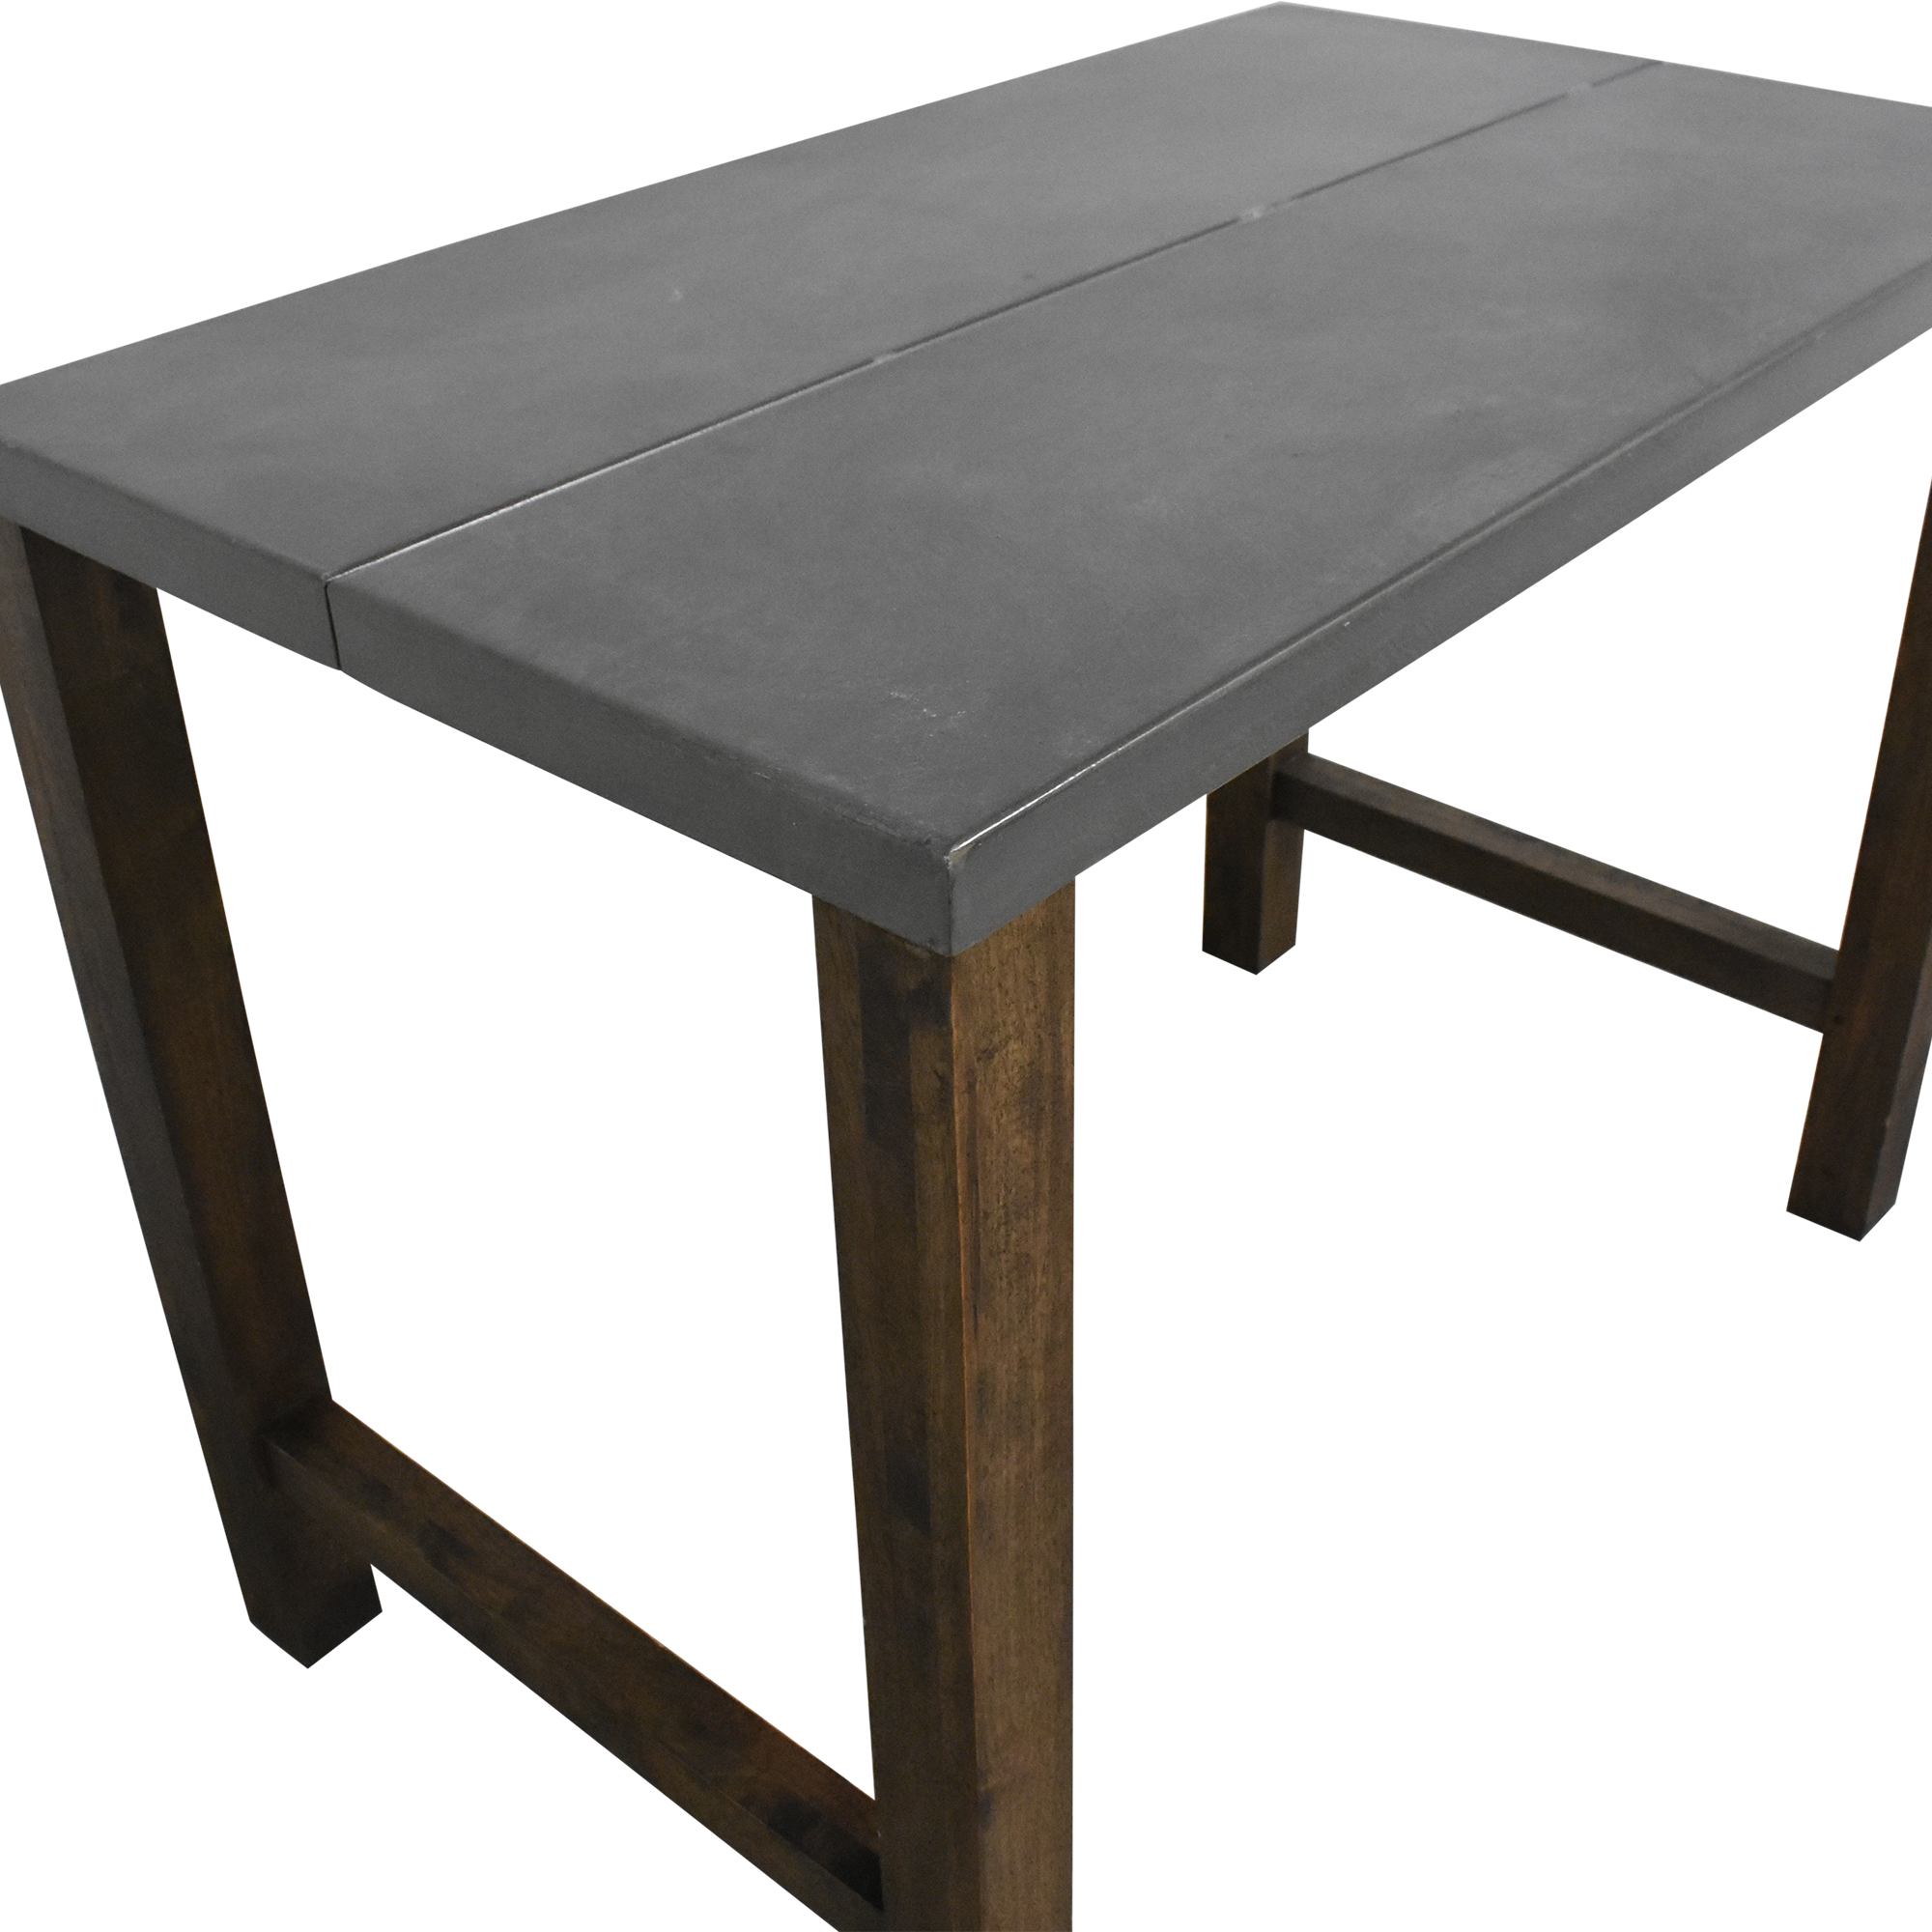 Crate & Barrel Crate & Barrel Counter Height Table discount